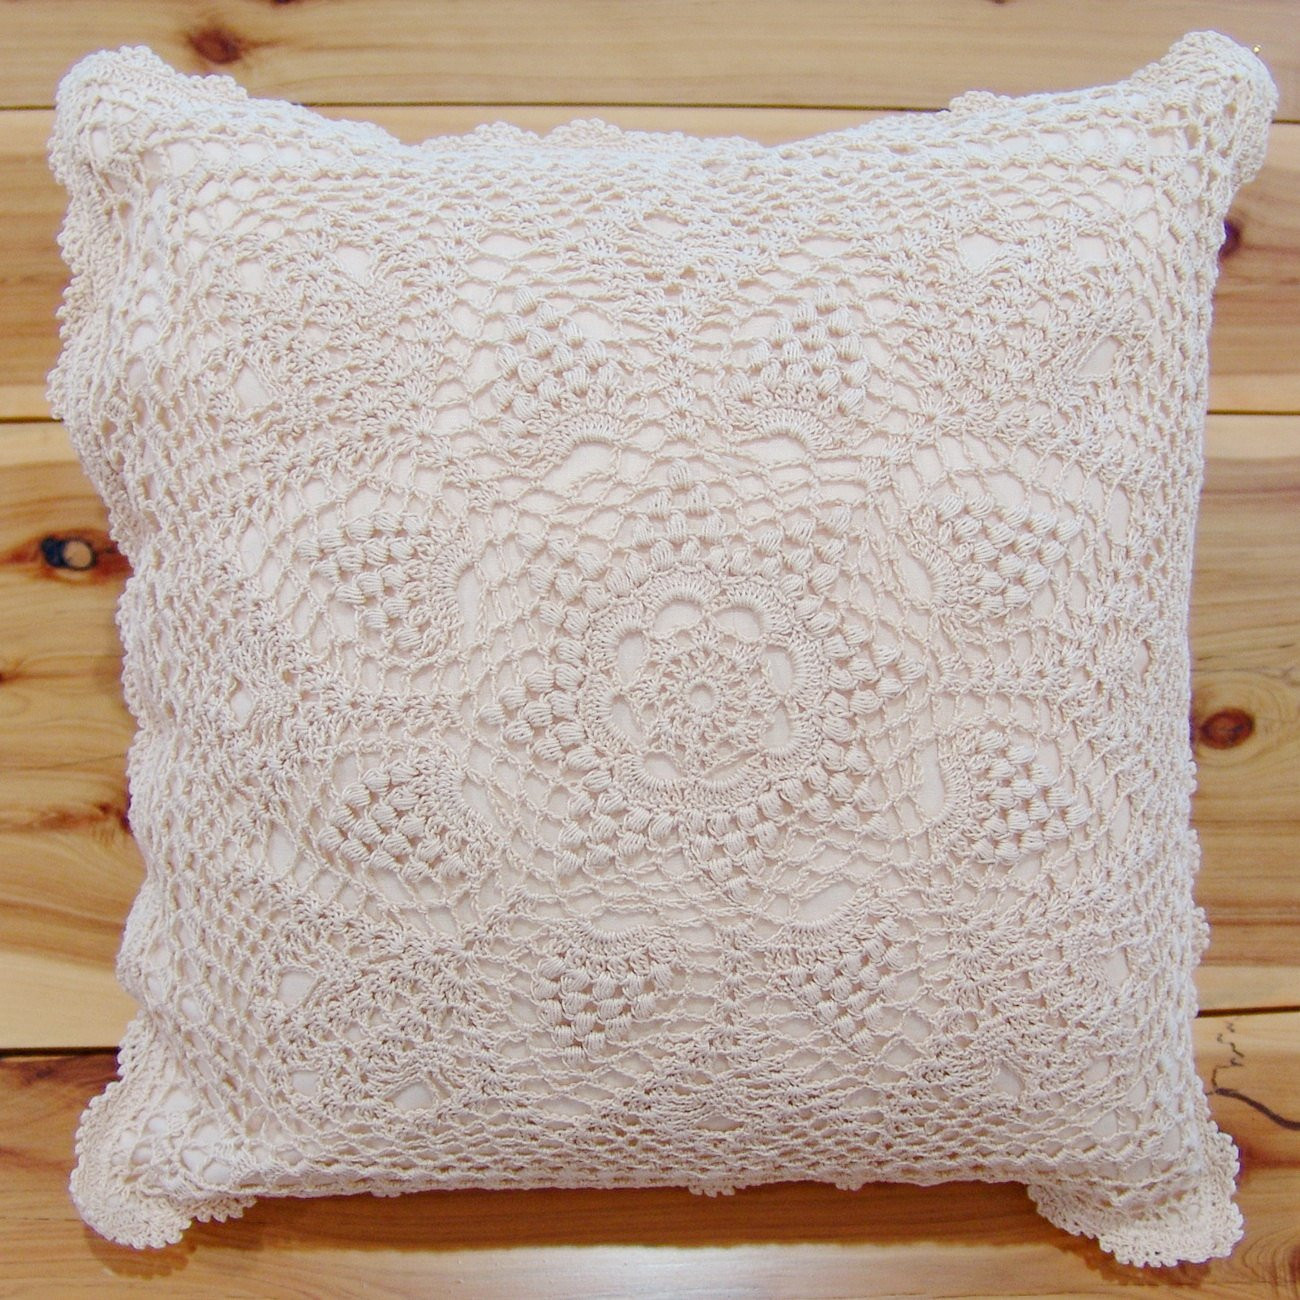 Luxury Hand Crochet Lace Cushion Cover Throw Pillow Cover Table Crochet Pillow Covers Of Incredible 47 Pics Crochet Pillow Covers